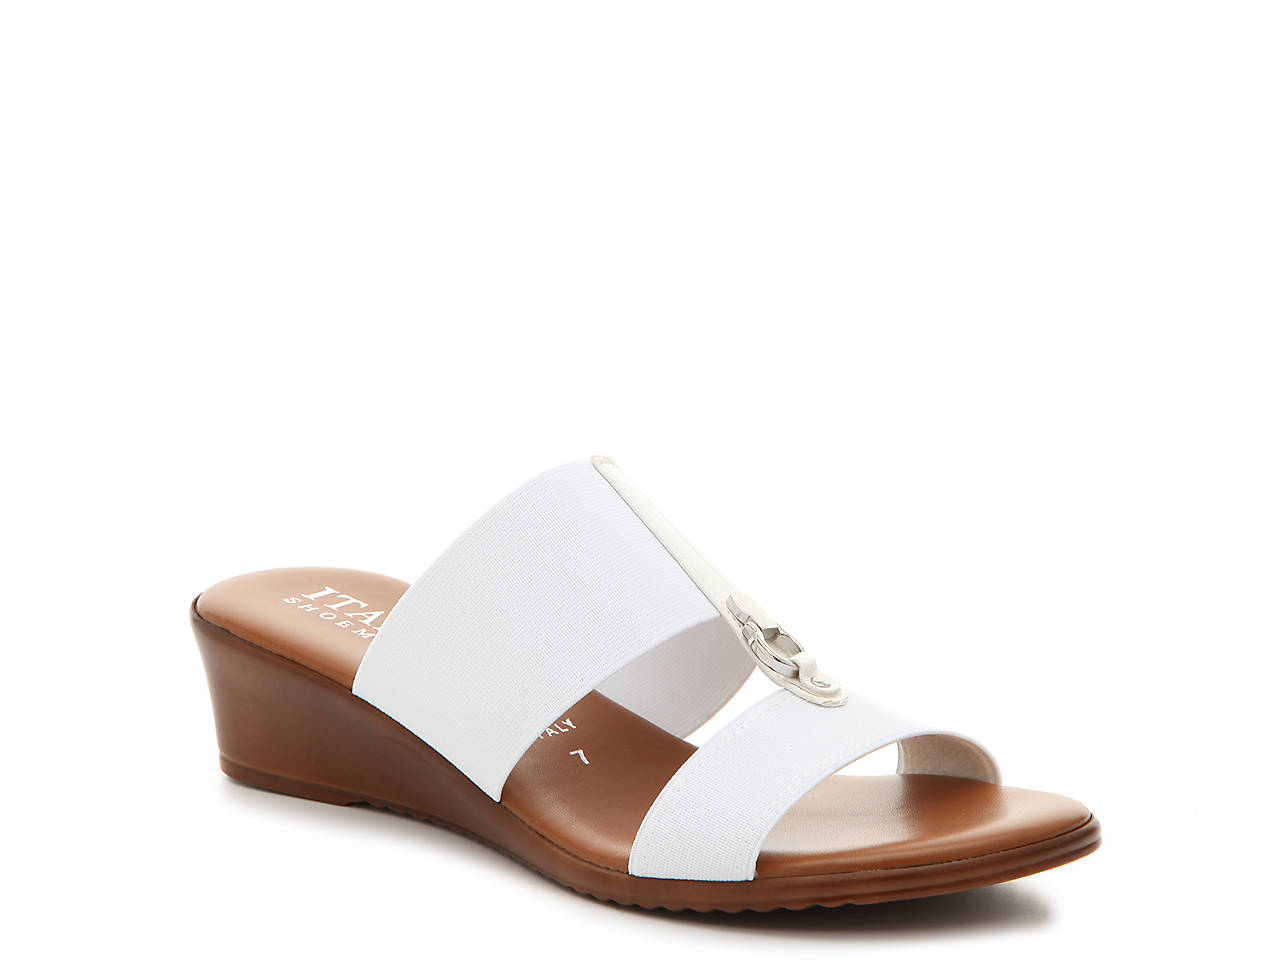 77e54378ba539 Italian Shoemakers Stretch Wedge Sandal Women s Shoes